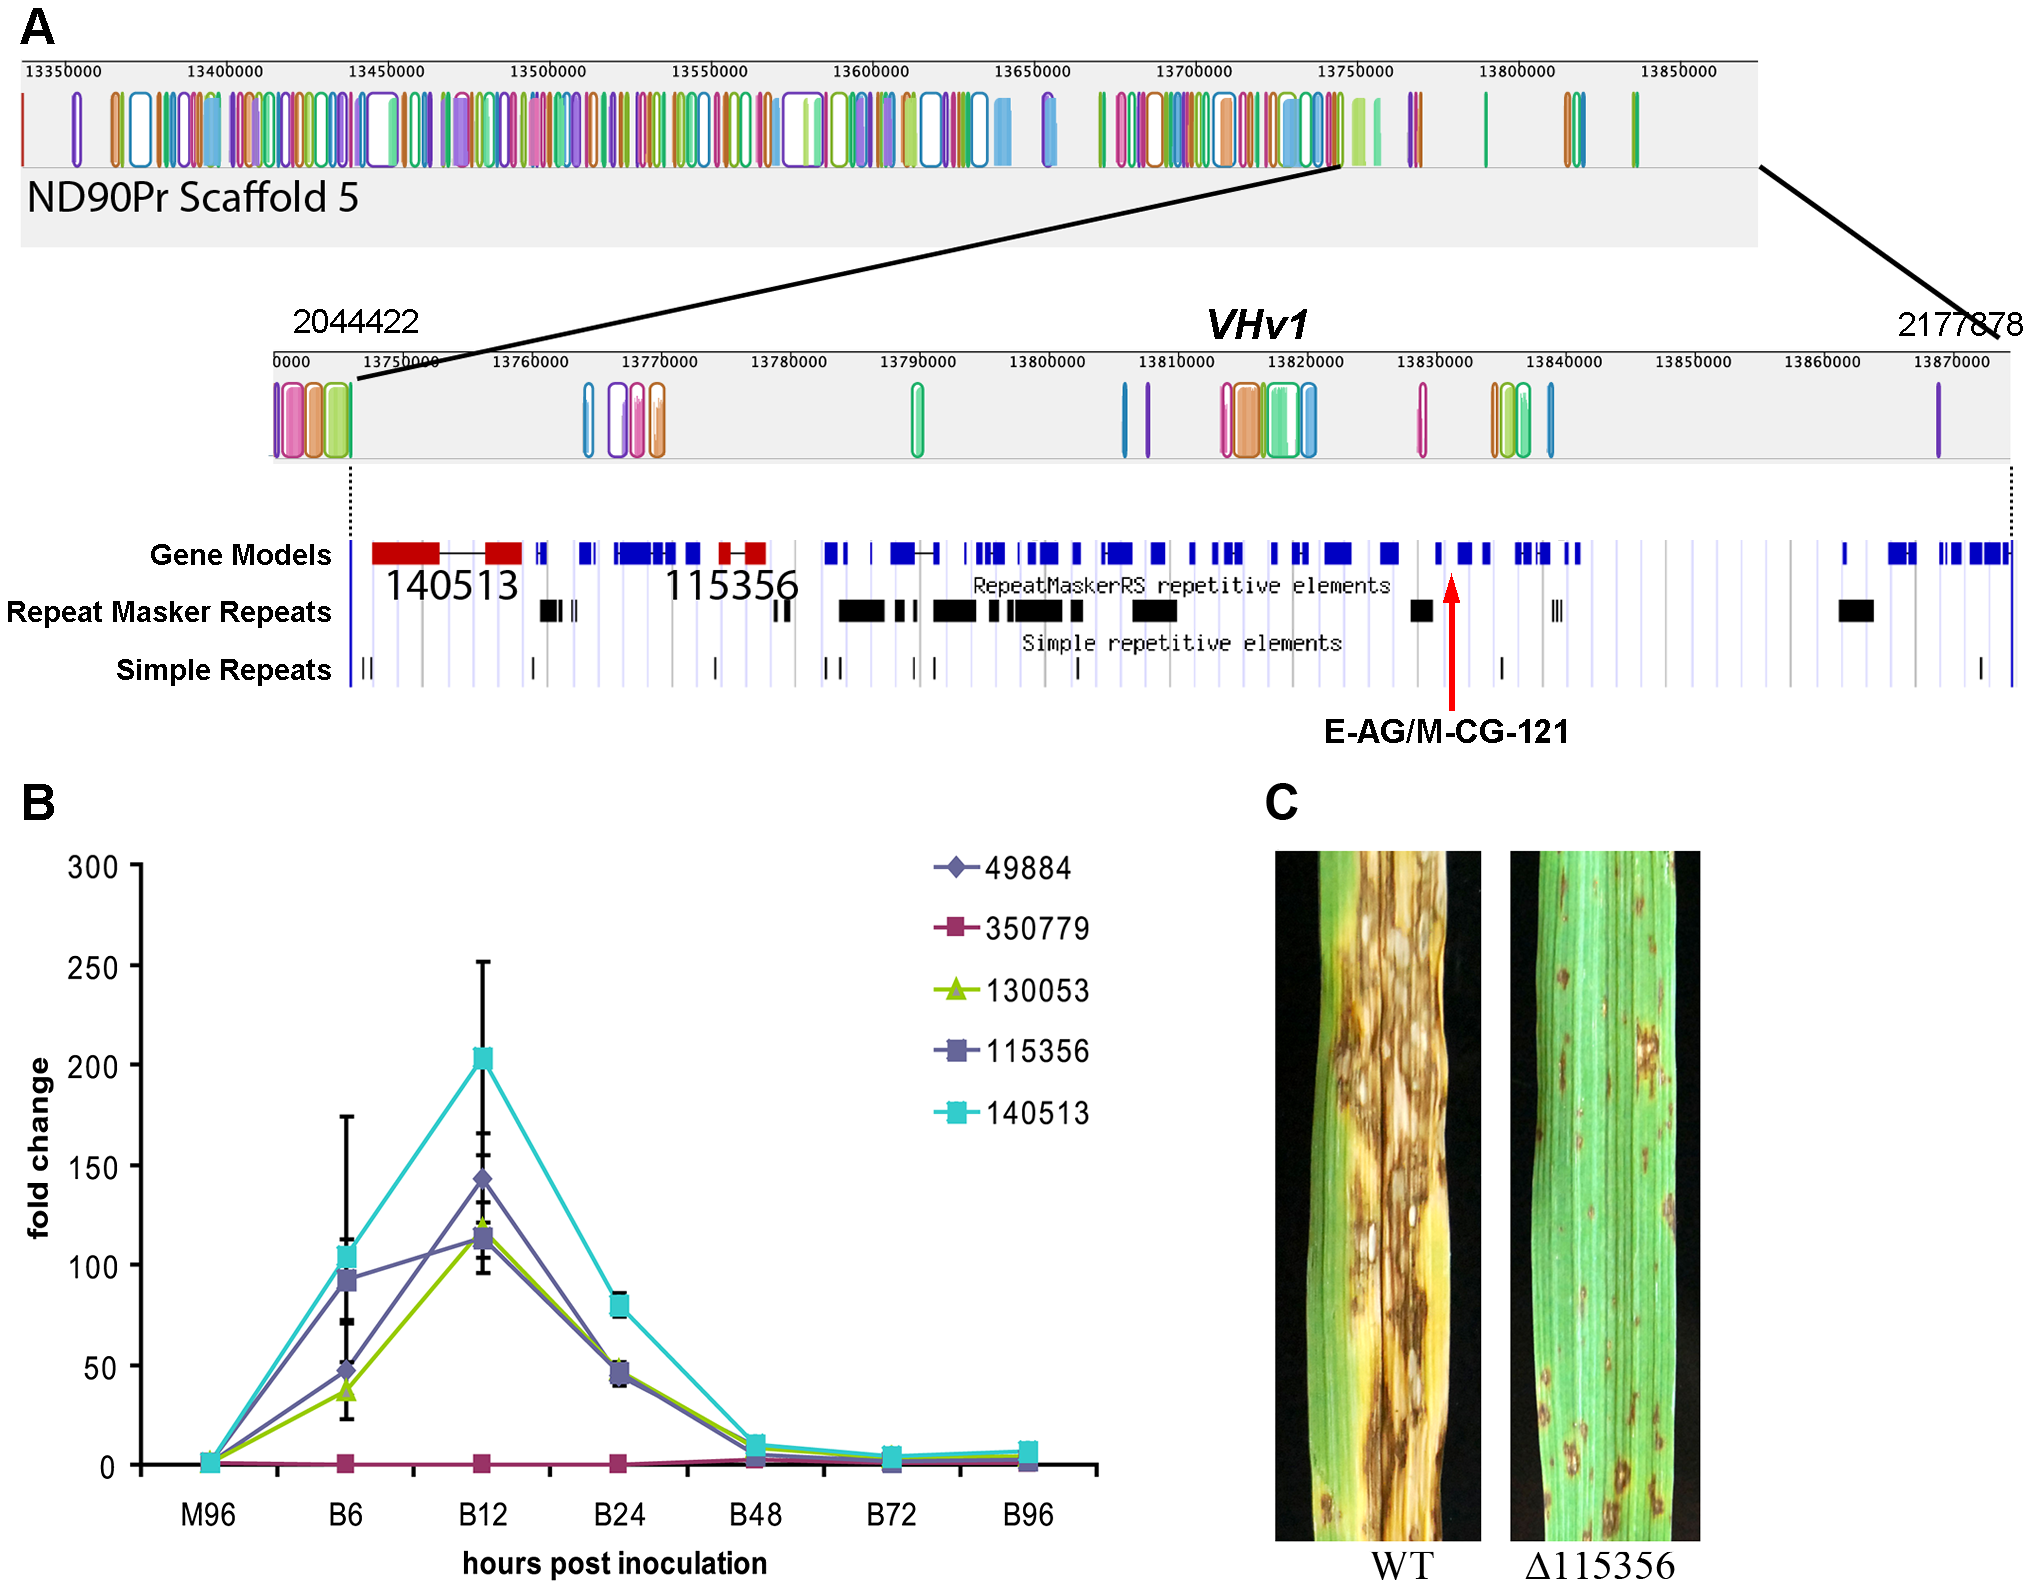 Genomic organization of the scaffold associated with the <i>VHv1</i> locus conferring high virulence of pathotype 2 isolate ND90Pr to barley cv. Bowman compared to the corresponding region in pathotype 0, isolate ND93-1.